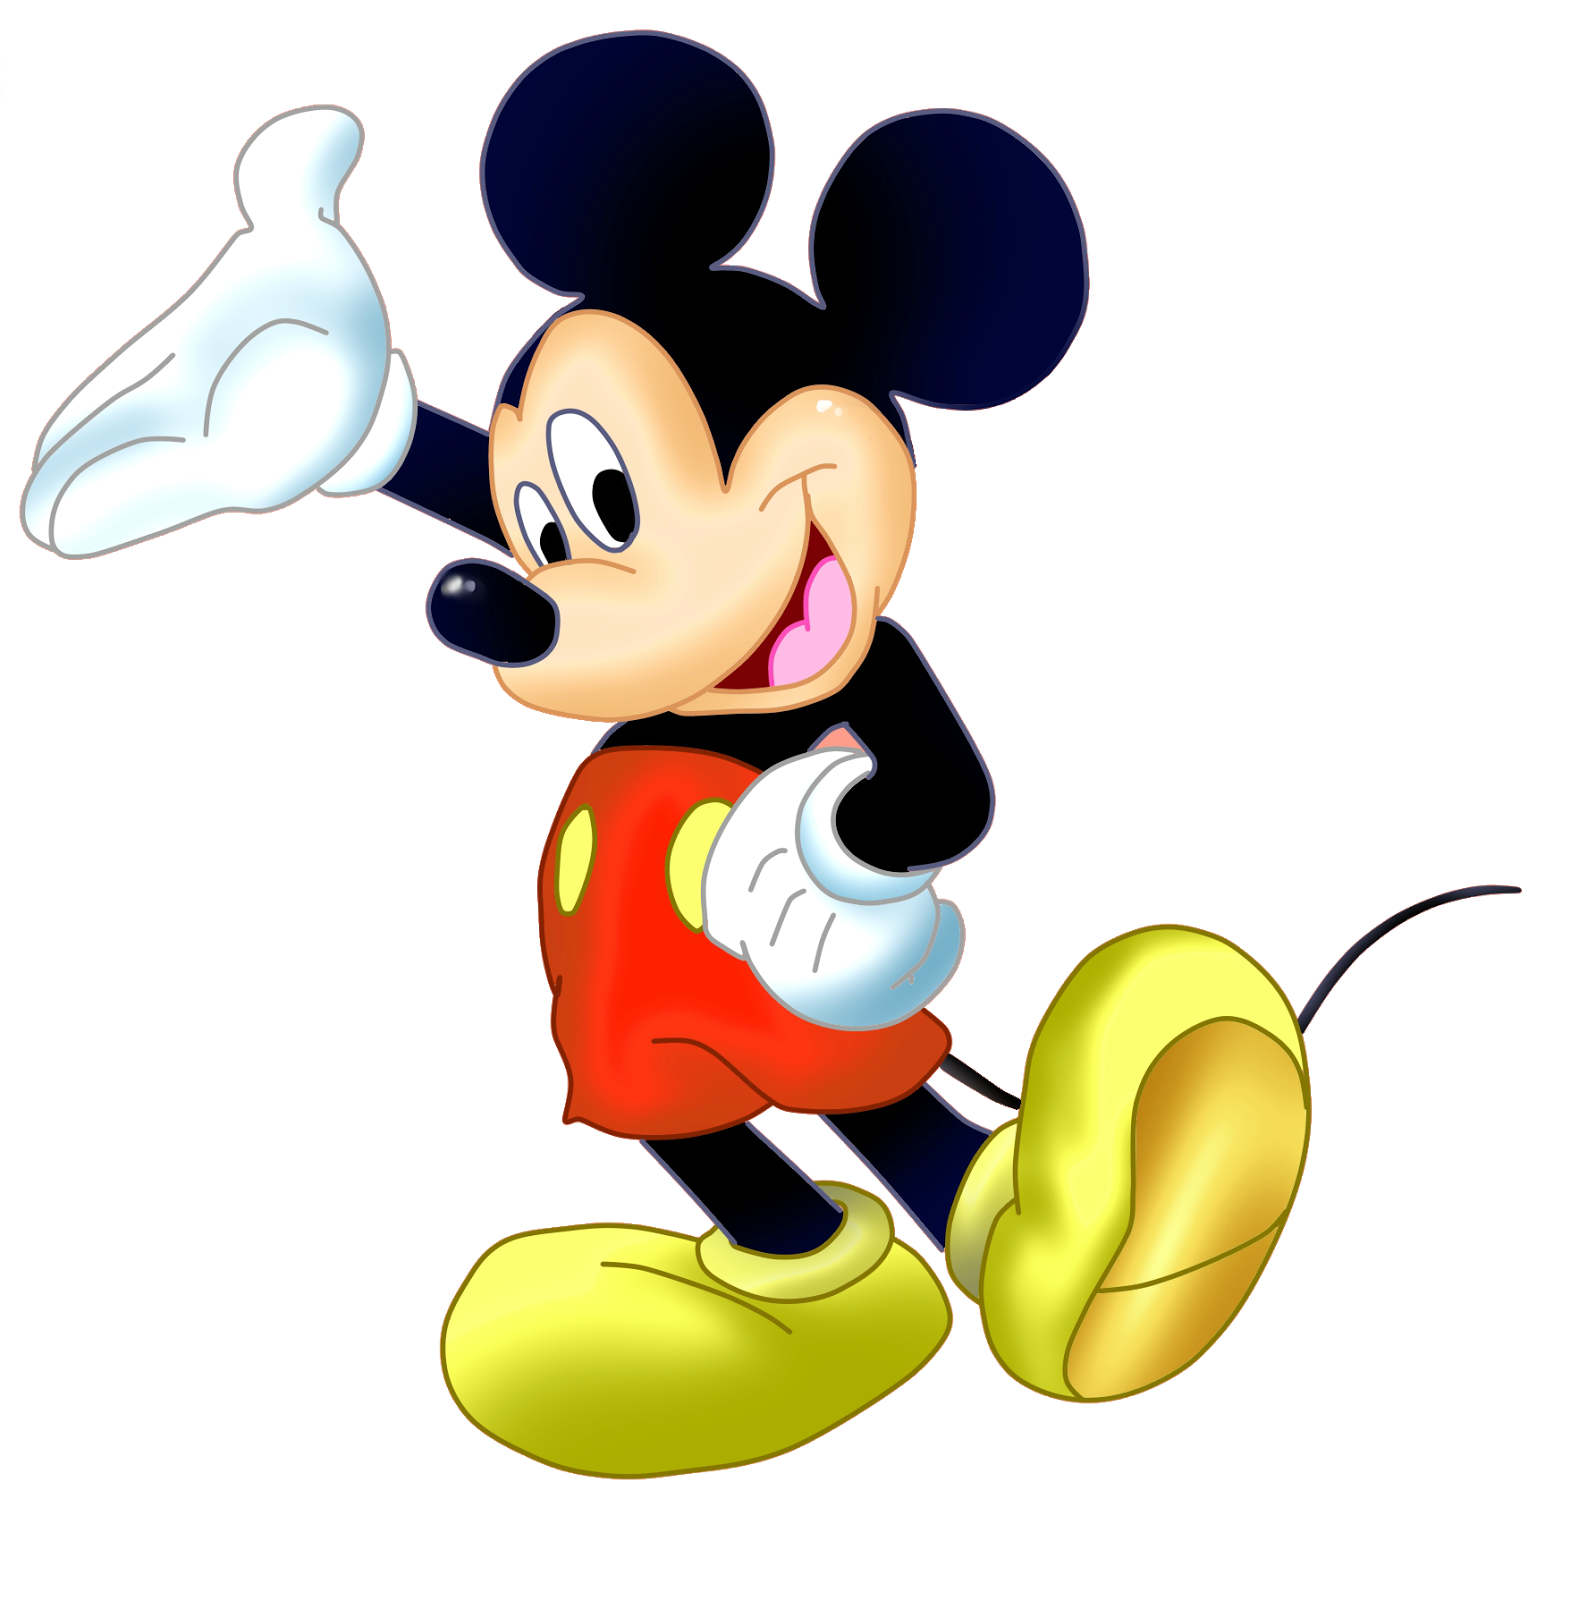 Mickey mouse hot dog dance clipart graphic library download Image result for mickey mouse | cake decorating | Pinterest | Mickey ... graphic library download